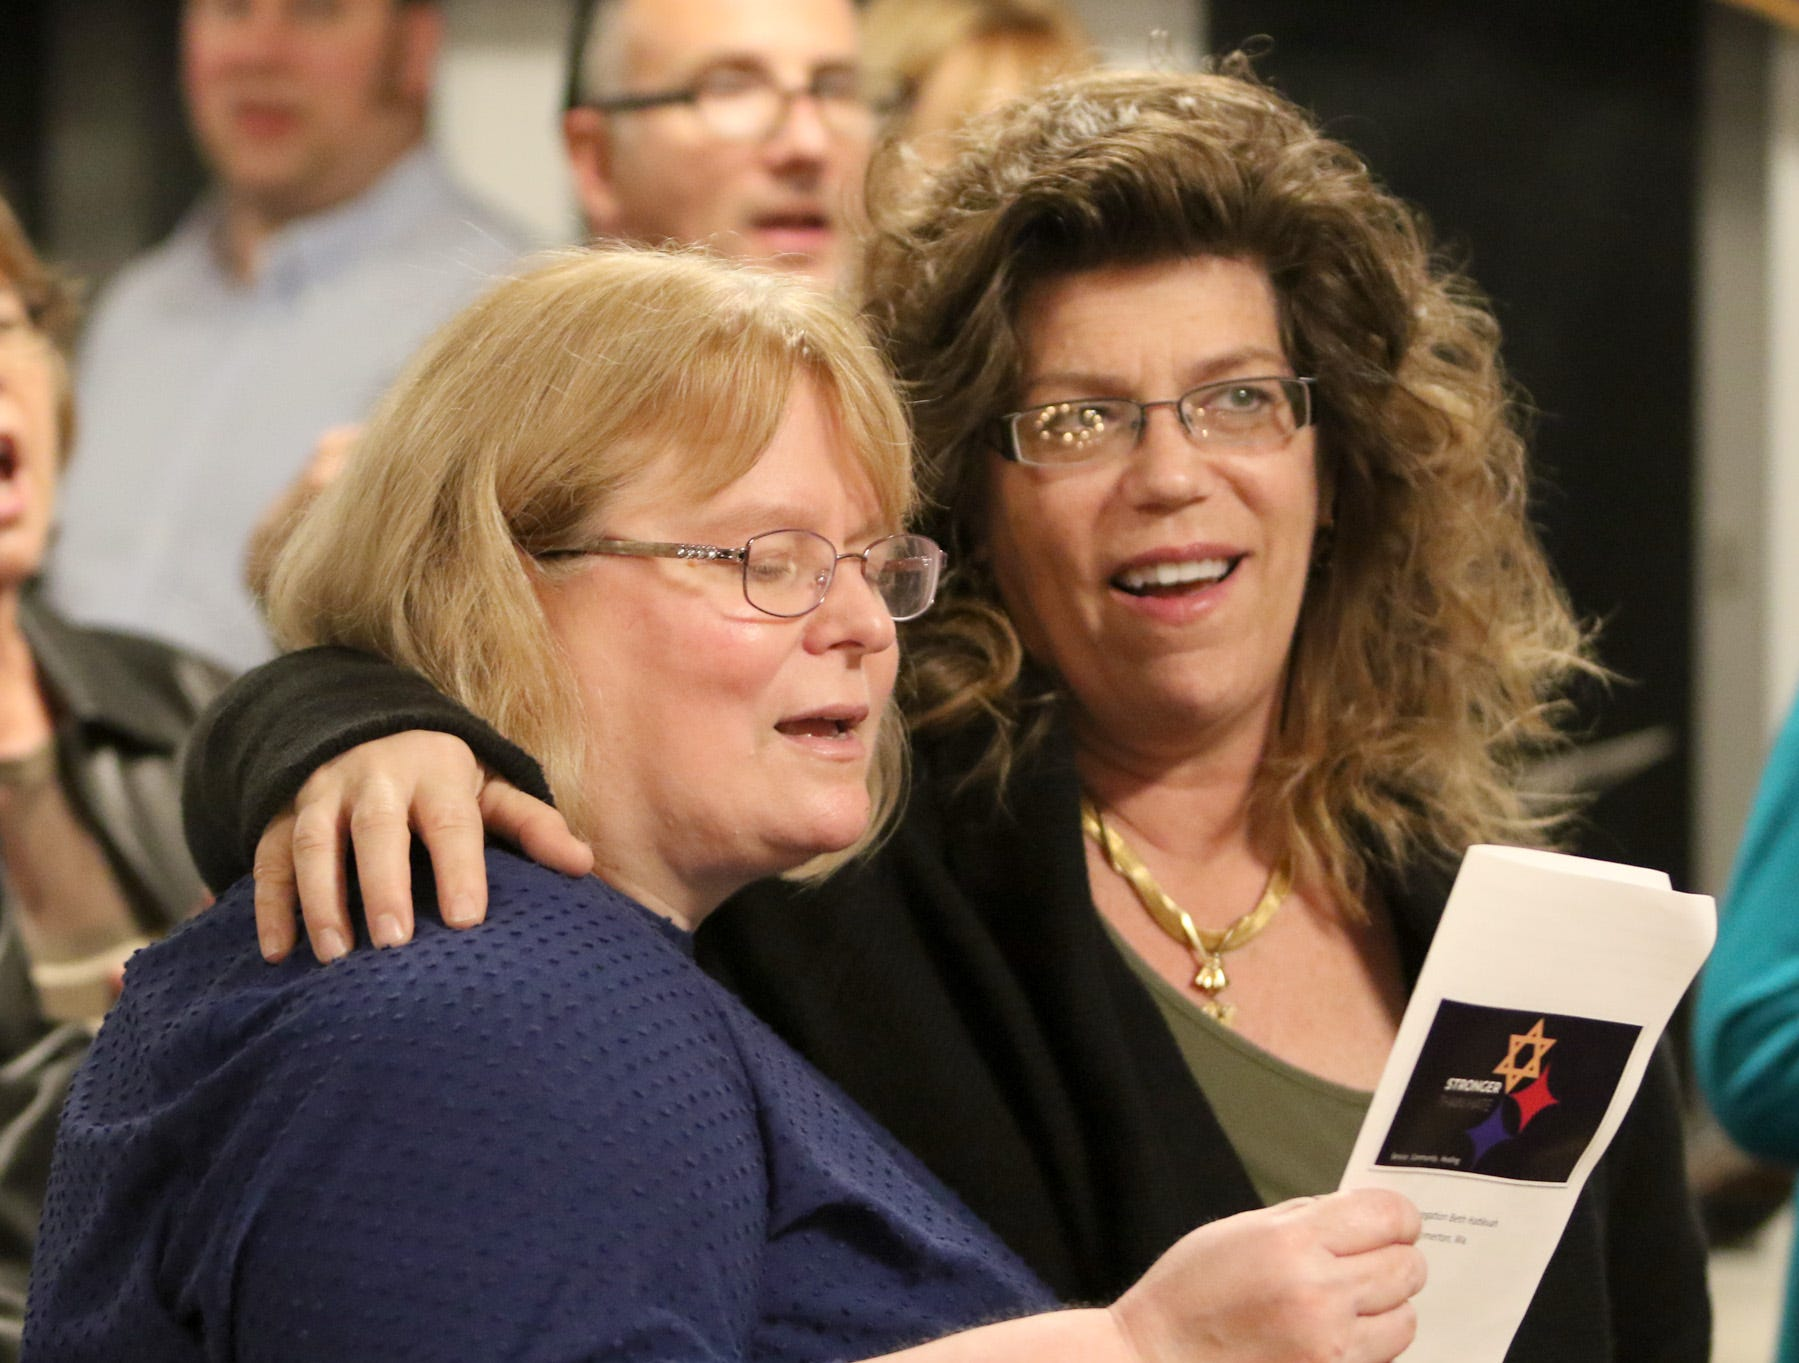 """The Beth Hatikvah (House of Hope) Synagogue in Bremerton held a memorial service for the Tree of Life Synagogue shootings Tuesday night in Bremerton. Patty Seljestad, left, and Andrea Dolan-Potter join in singing """"This Little Light of Mine"""" during the service."""